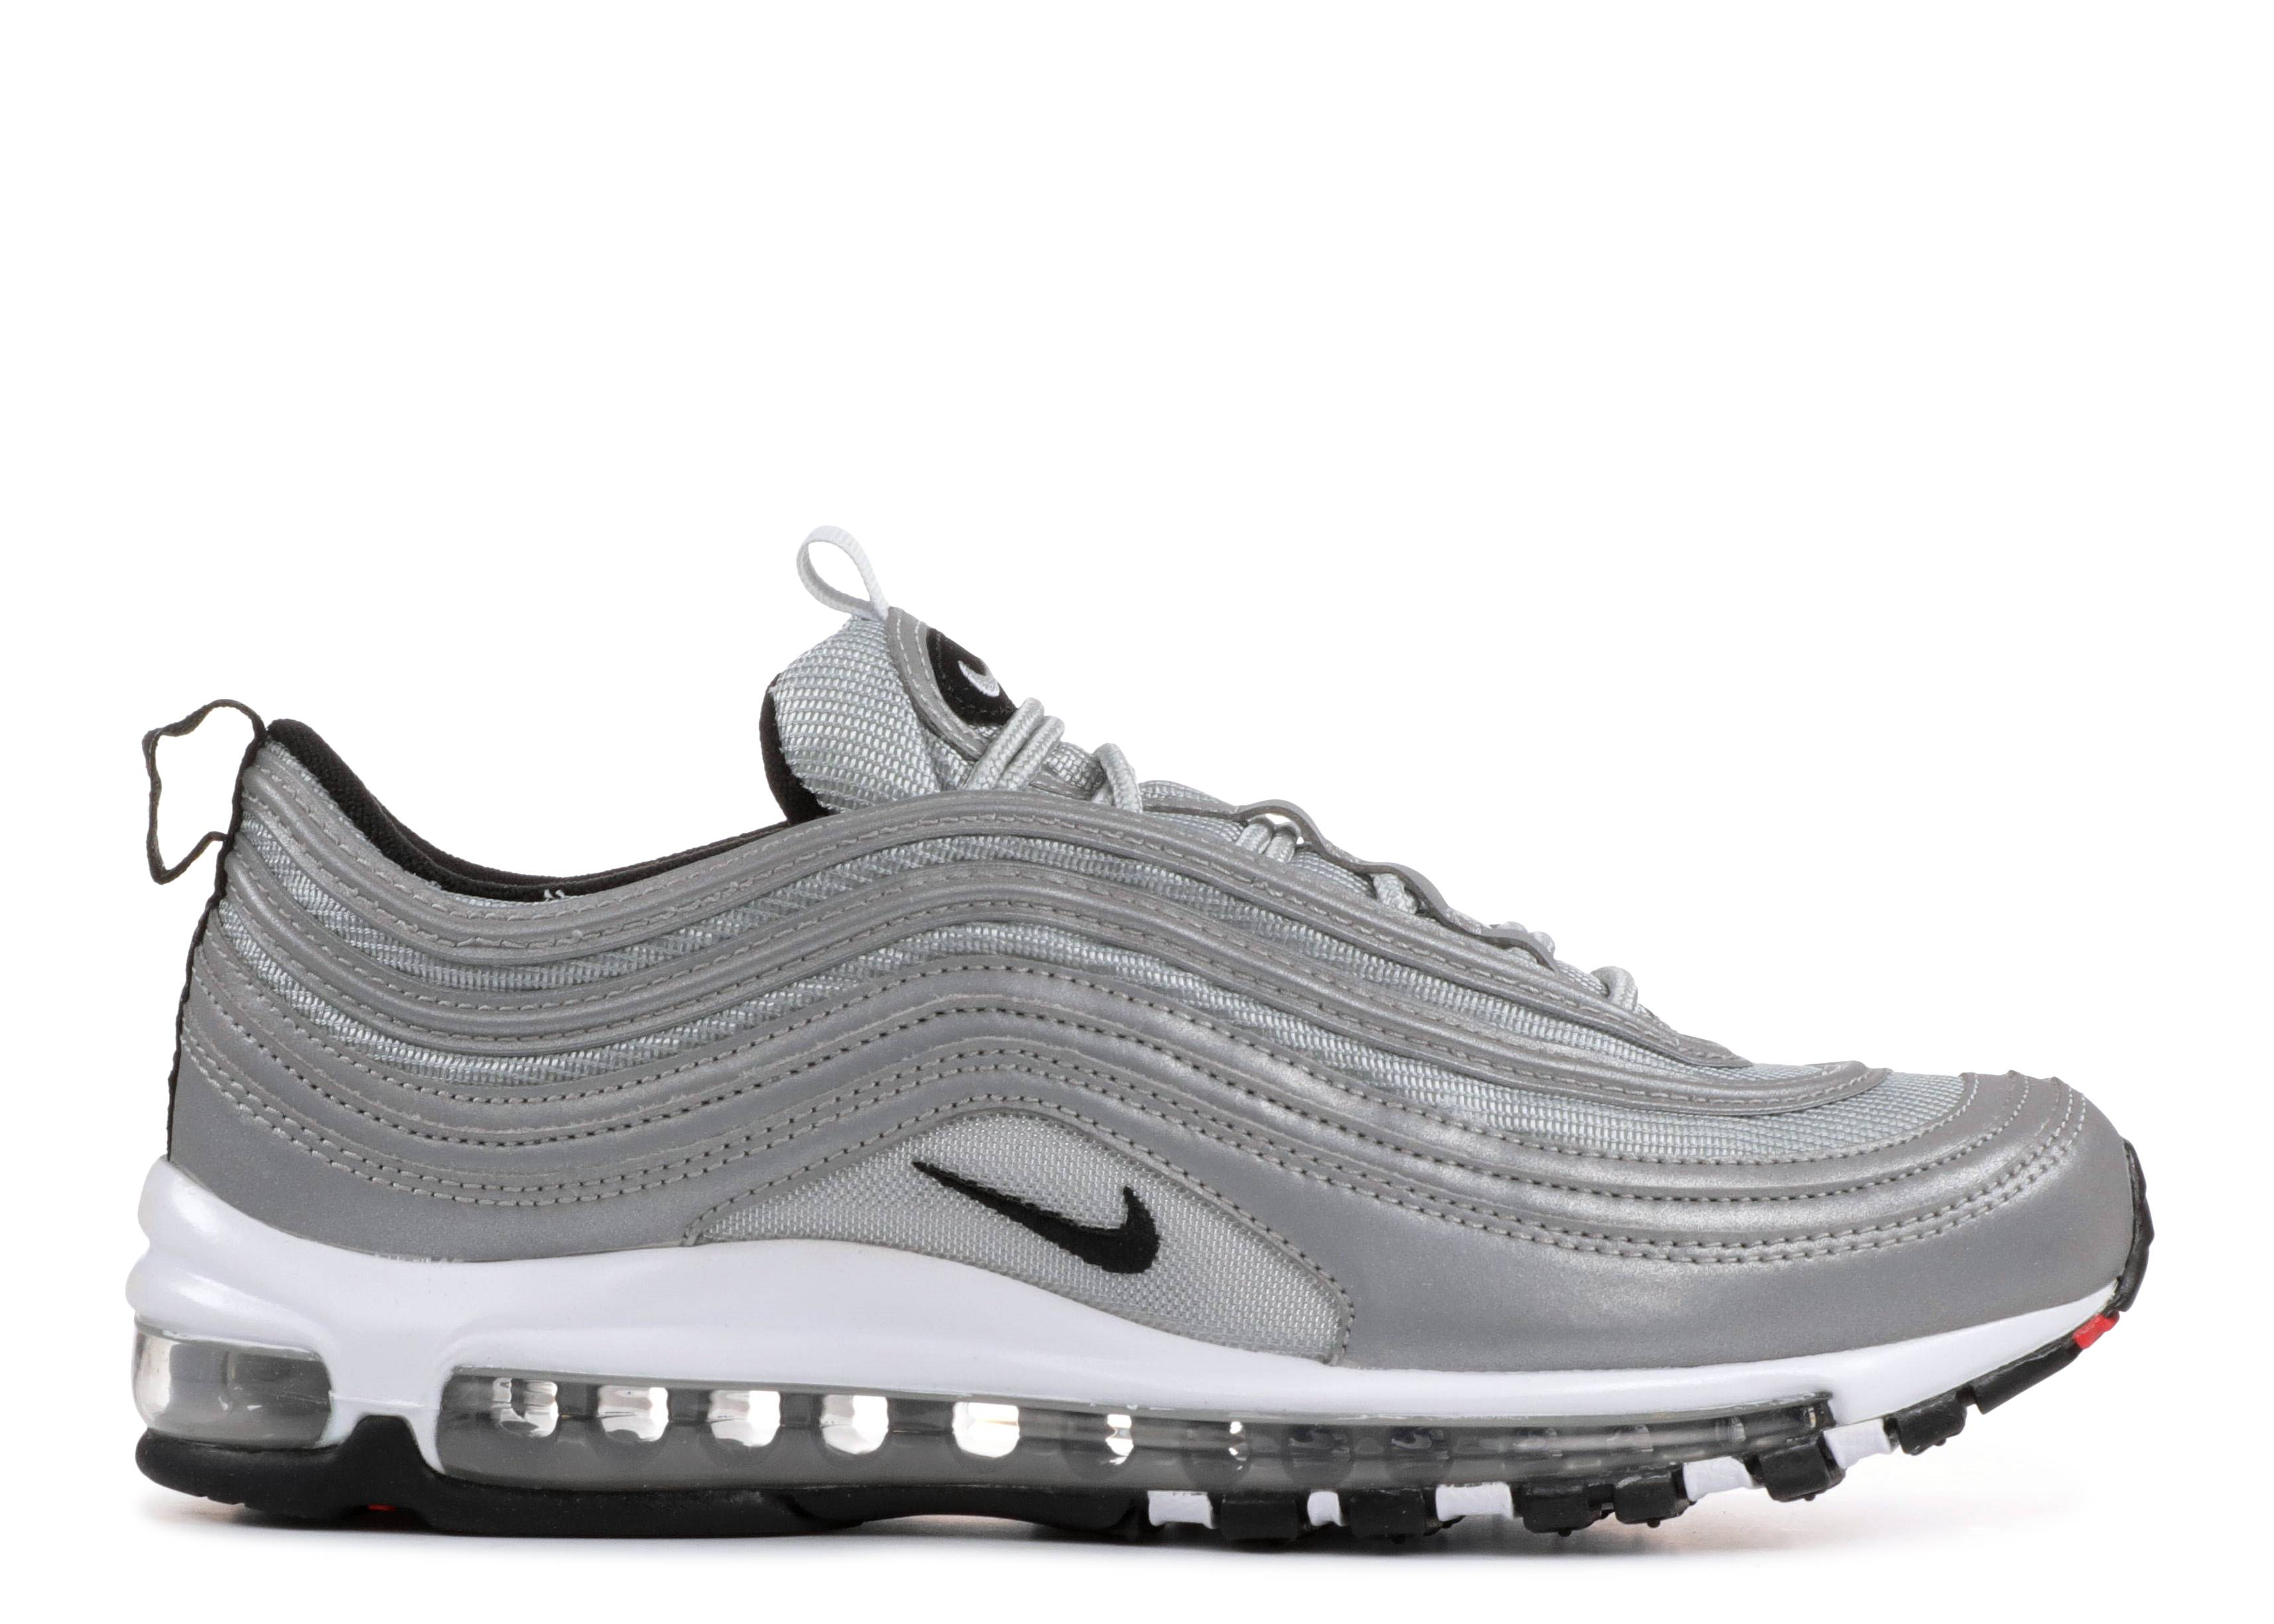 Rango Humorístico Inodoro  NIKE AIR MAX 97 PREMIUM 'Reflect Silver' - Nike - 312834 007 - reflect  silver/black | Flight Club